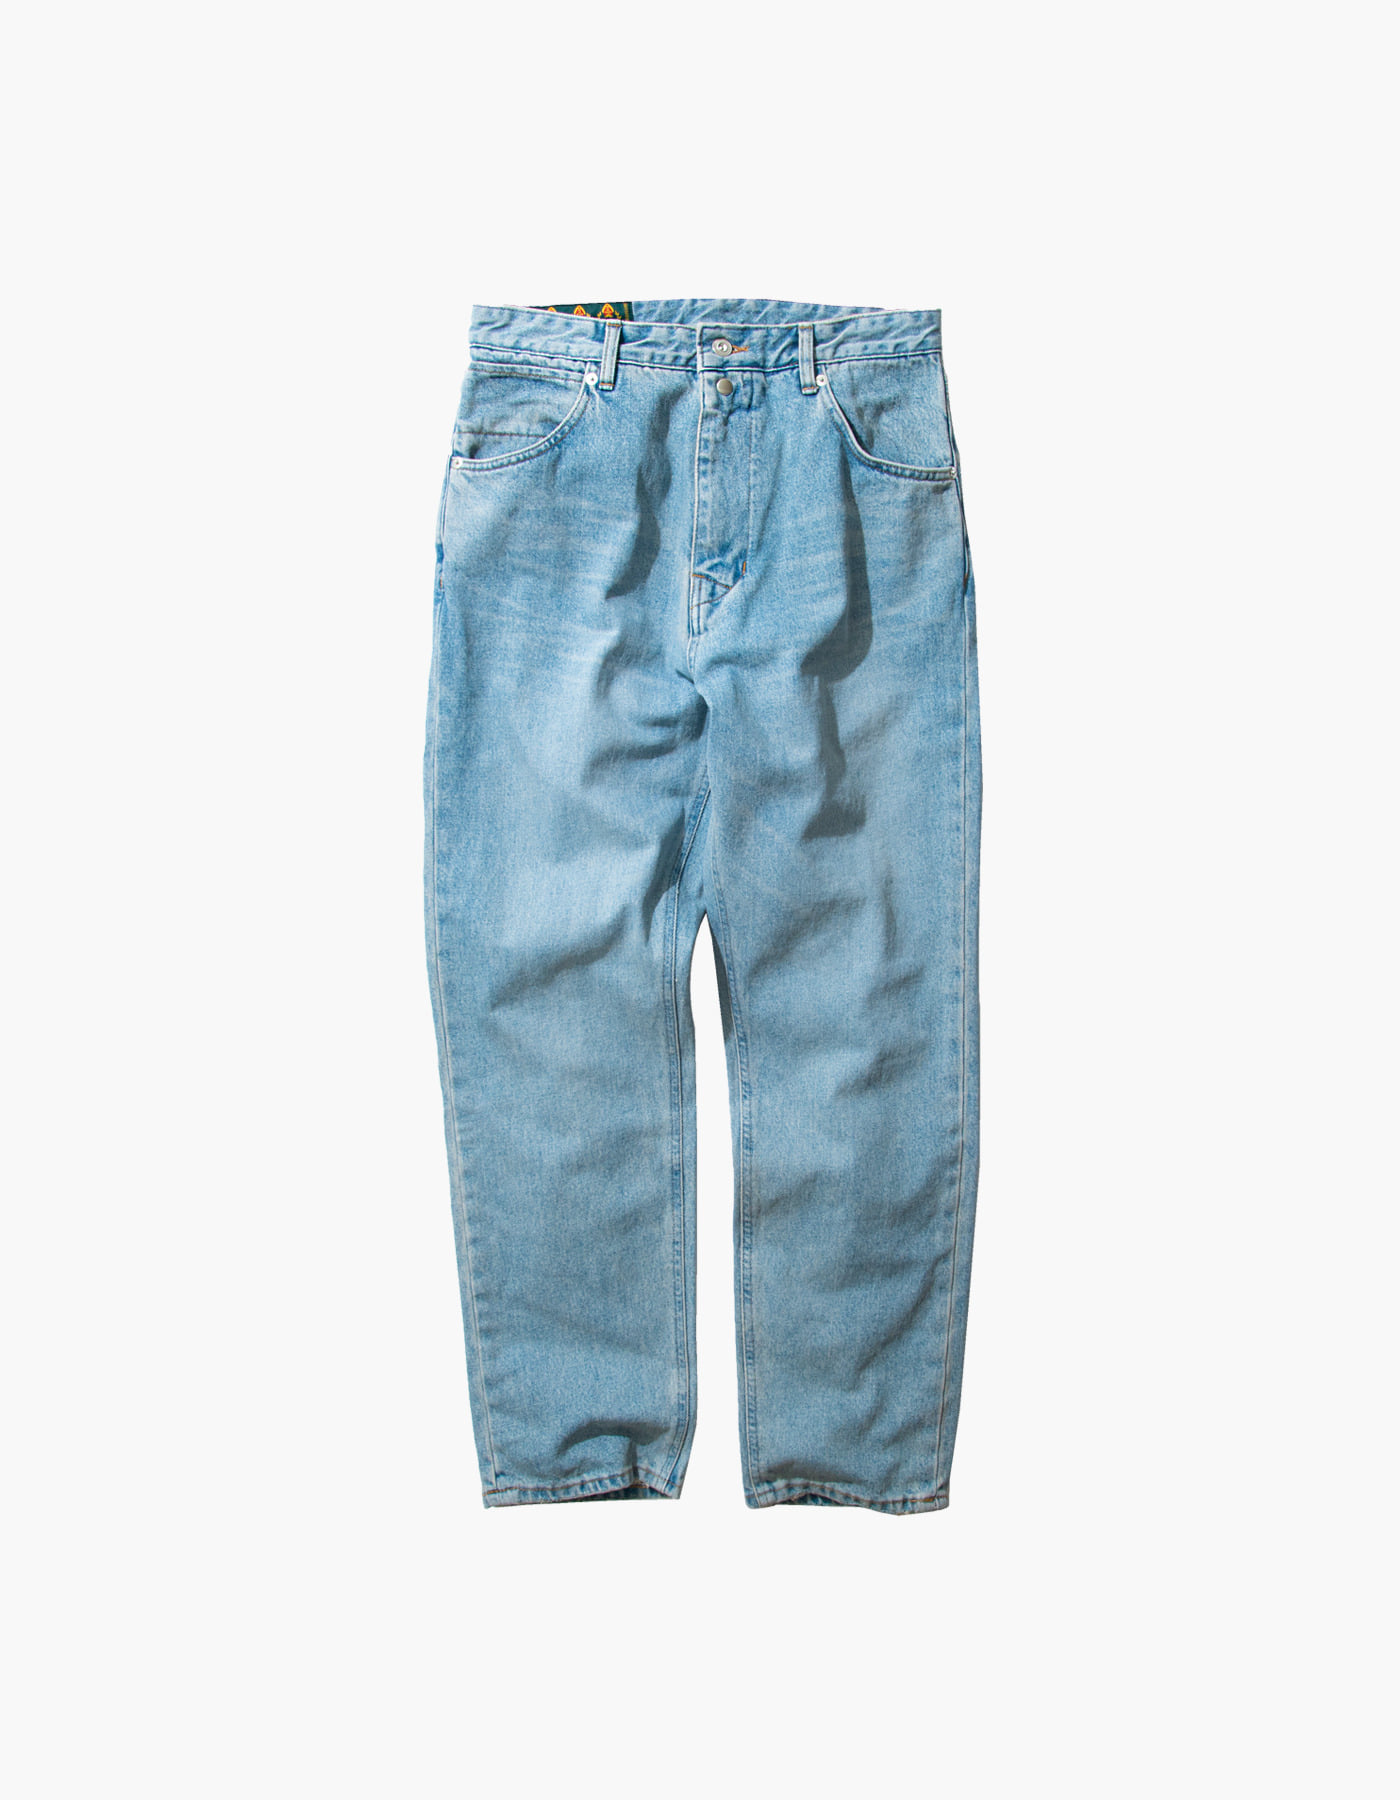 STONE WASHED BAGGY PANTS / LIGHT INDIGO